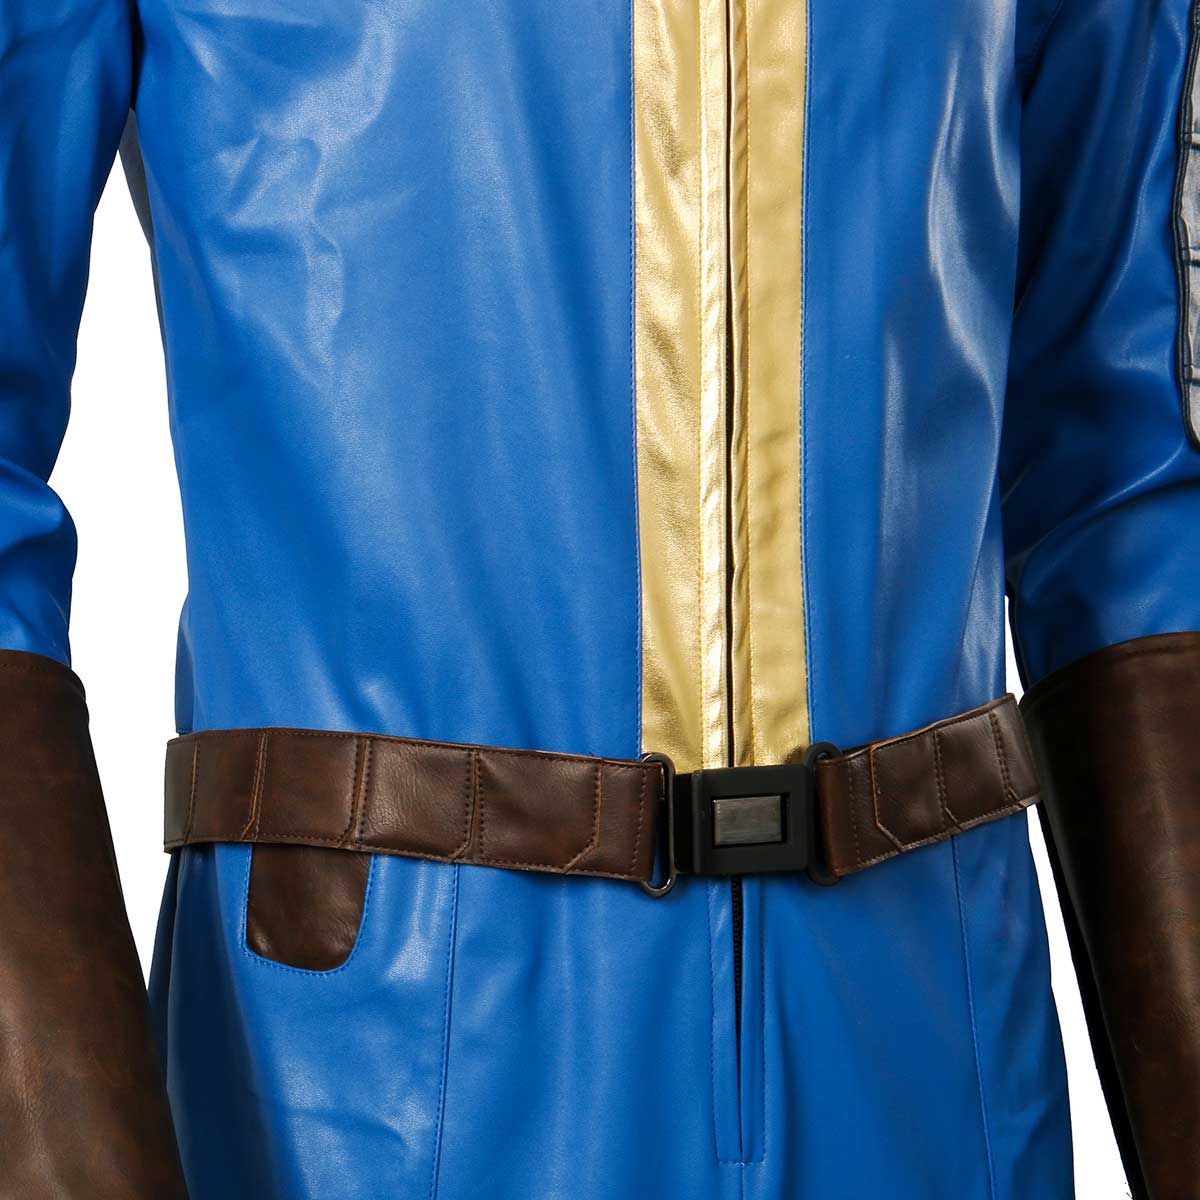 Game Fallout 4 Fallout 76 Vault 76 Cosplay Costume Suit Custom Made Halloween Costume